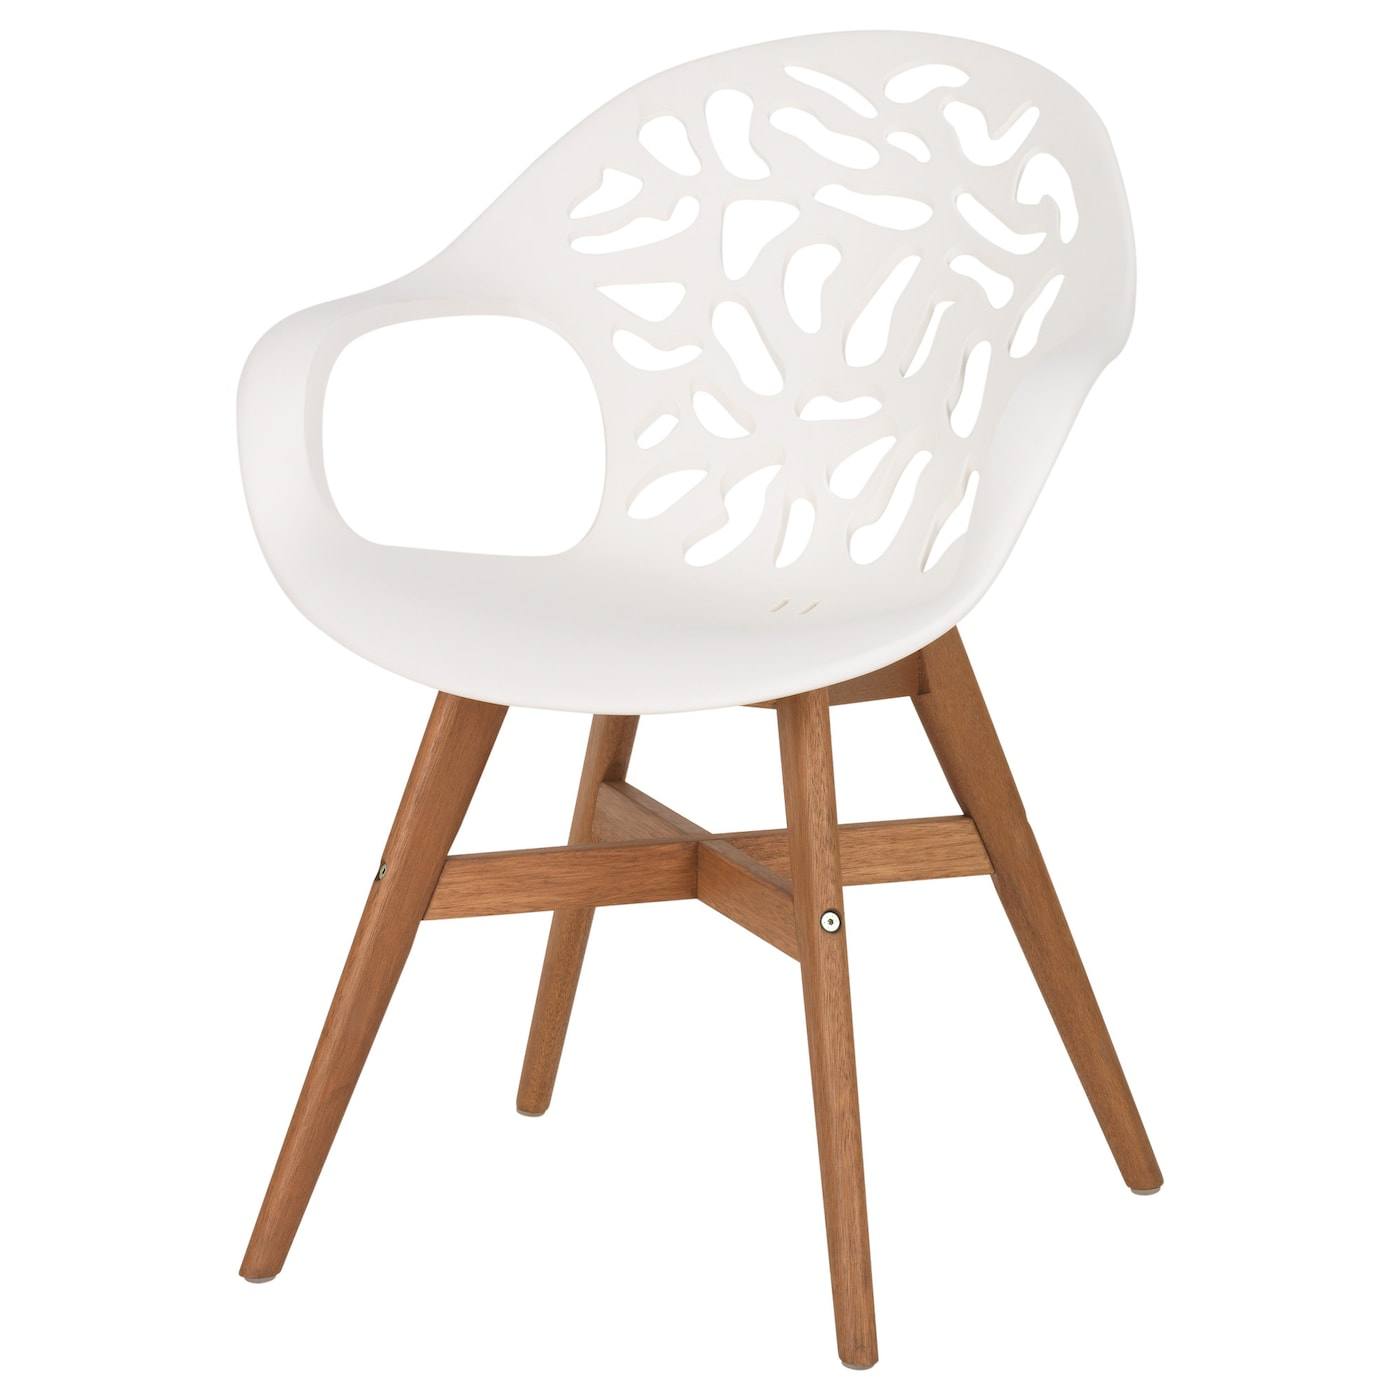 Ikea Angrim Chair You Sit Comfortably Thanks To The Shaped Back And Armrests